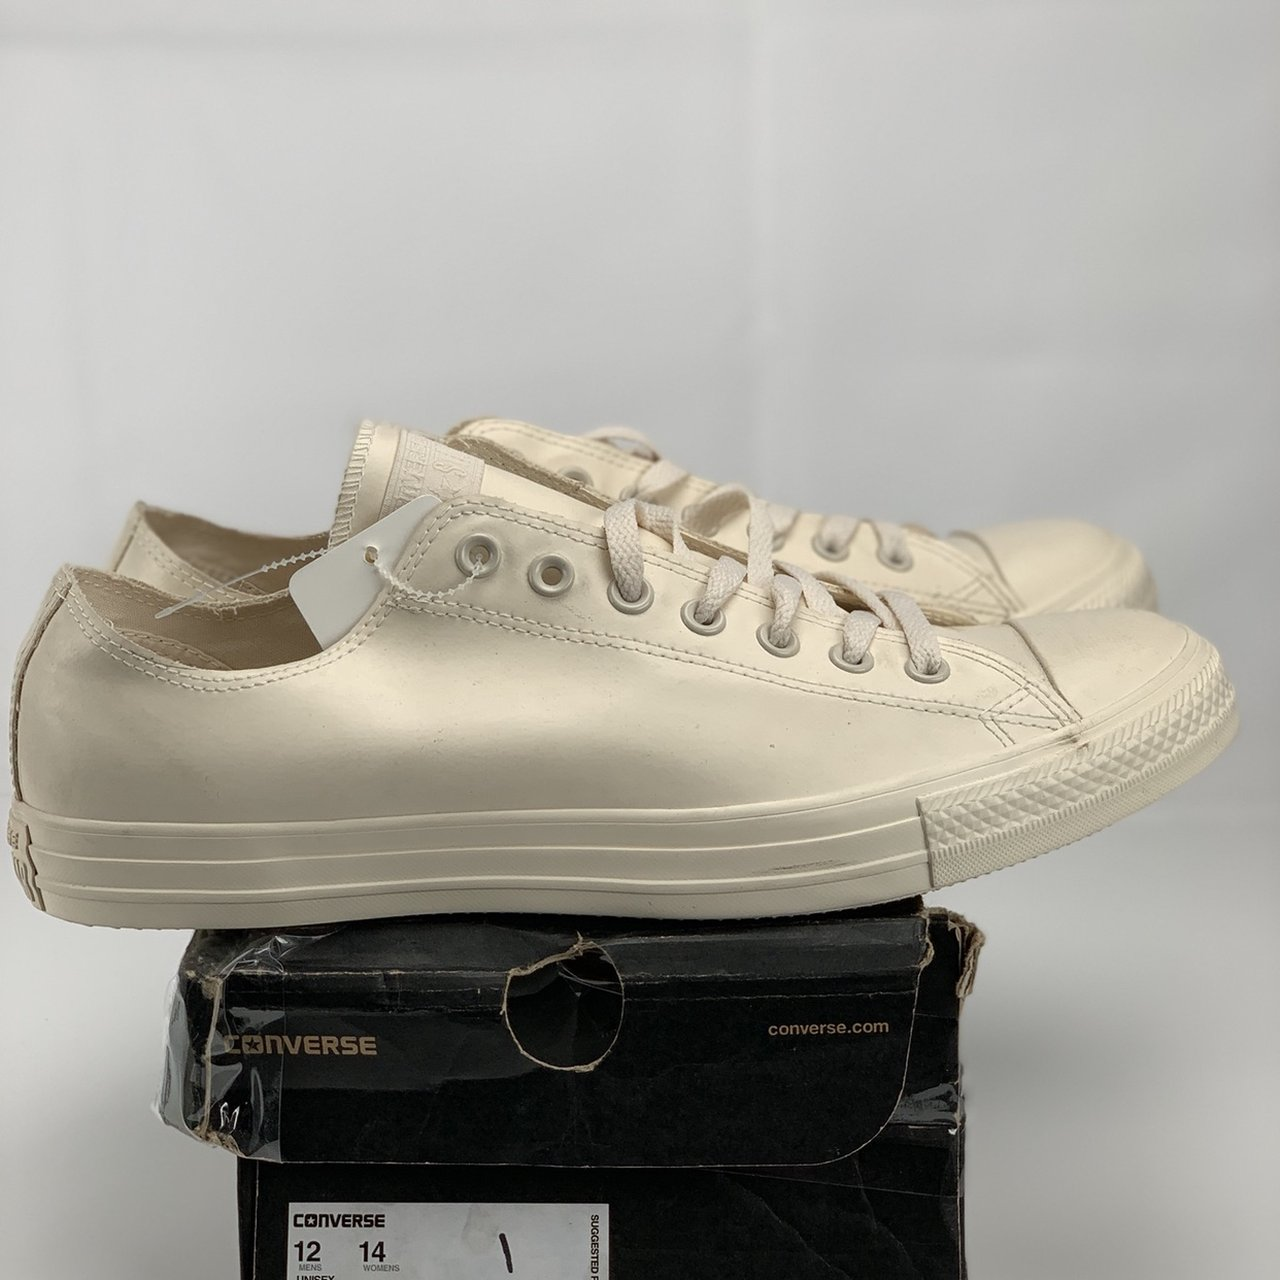 09086eda114c48 For sale is a pair of brand new in box Converse Chuck Low - Depop